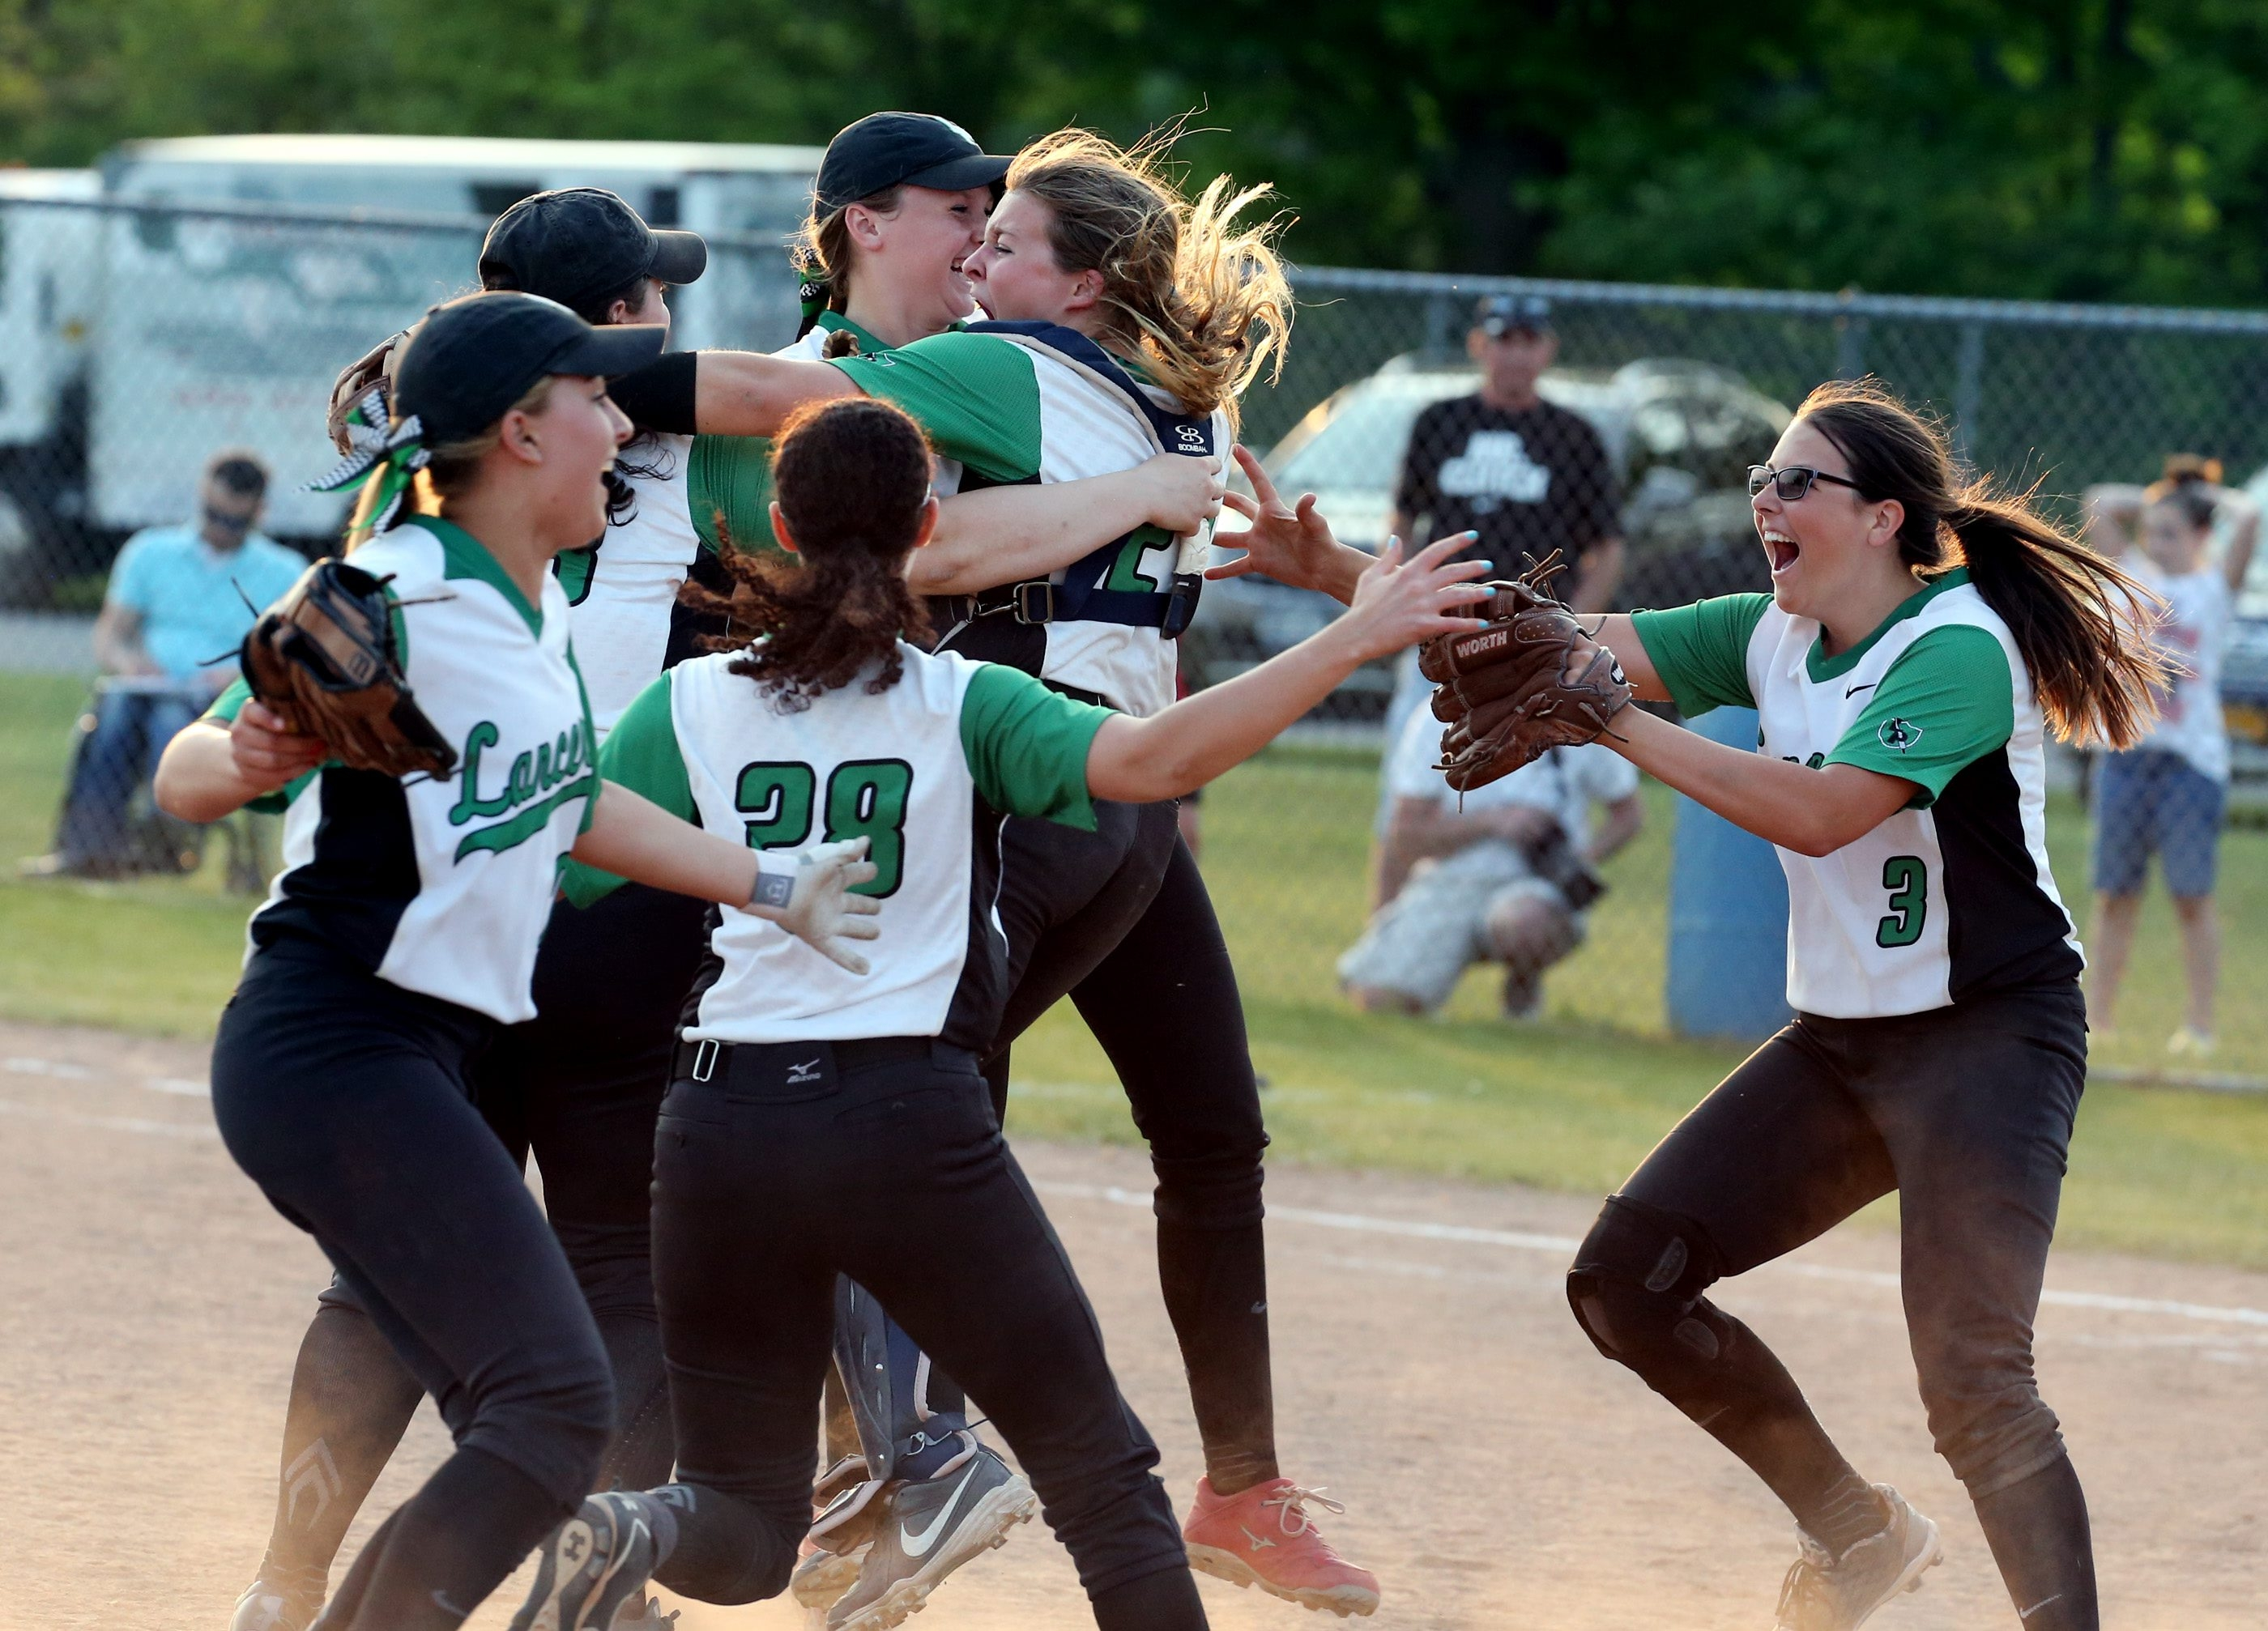 Lewiston-Porter players celebrate after beating Starpoint, 3-2, in the Section VI Class A-2 championship game at Depew on Wednesday.